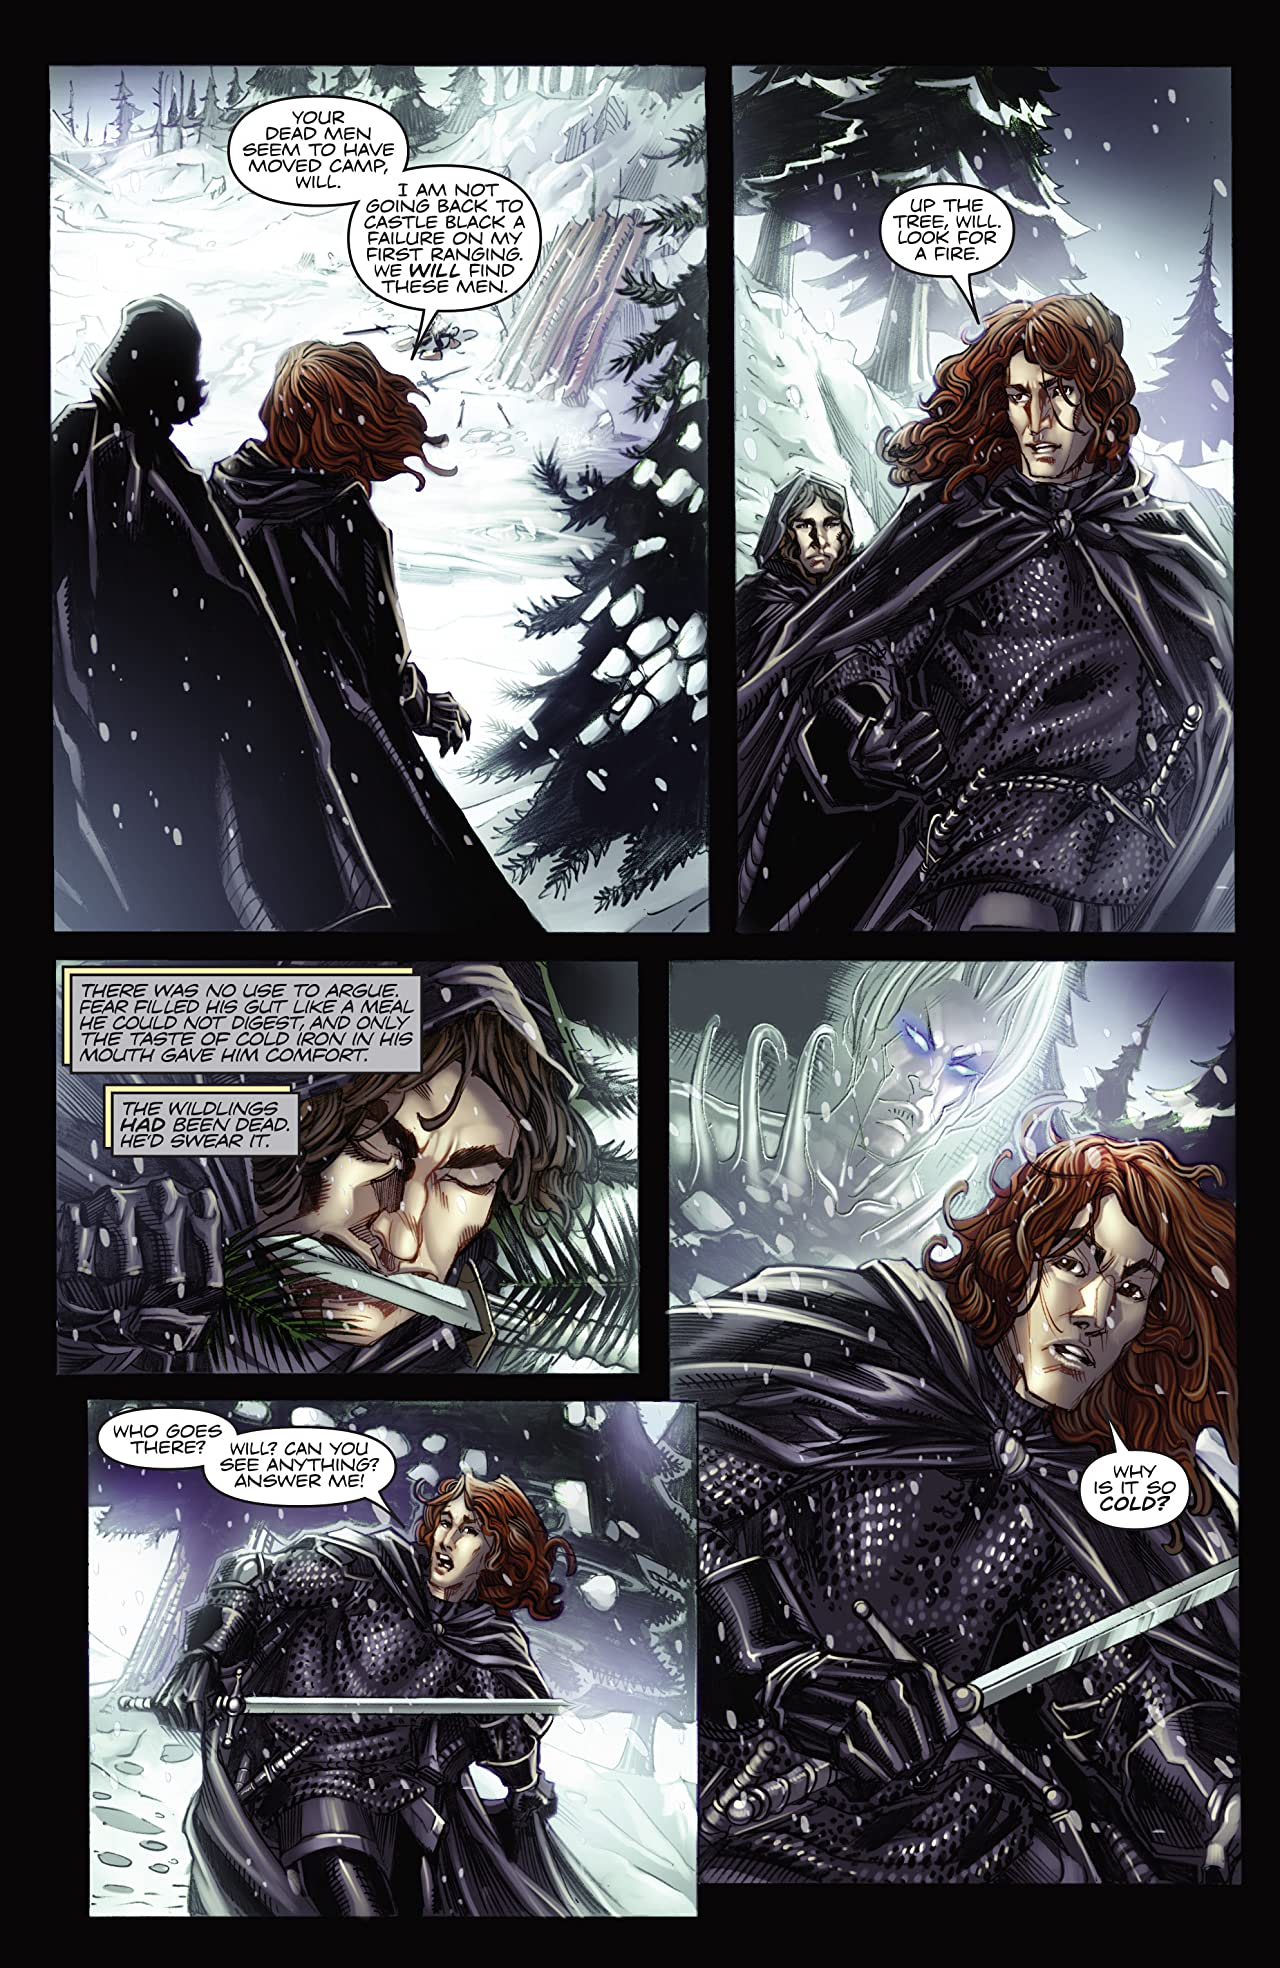 George R.R. Martin's A Game Of Thrones: The Comic Book #1